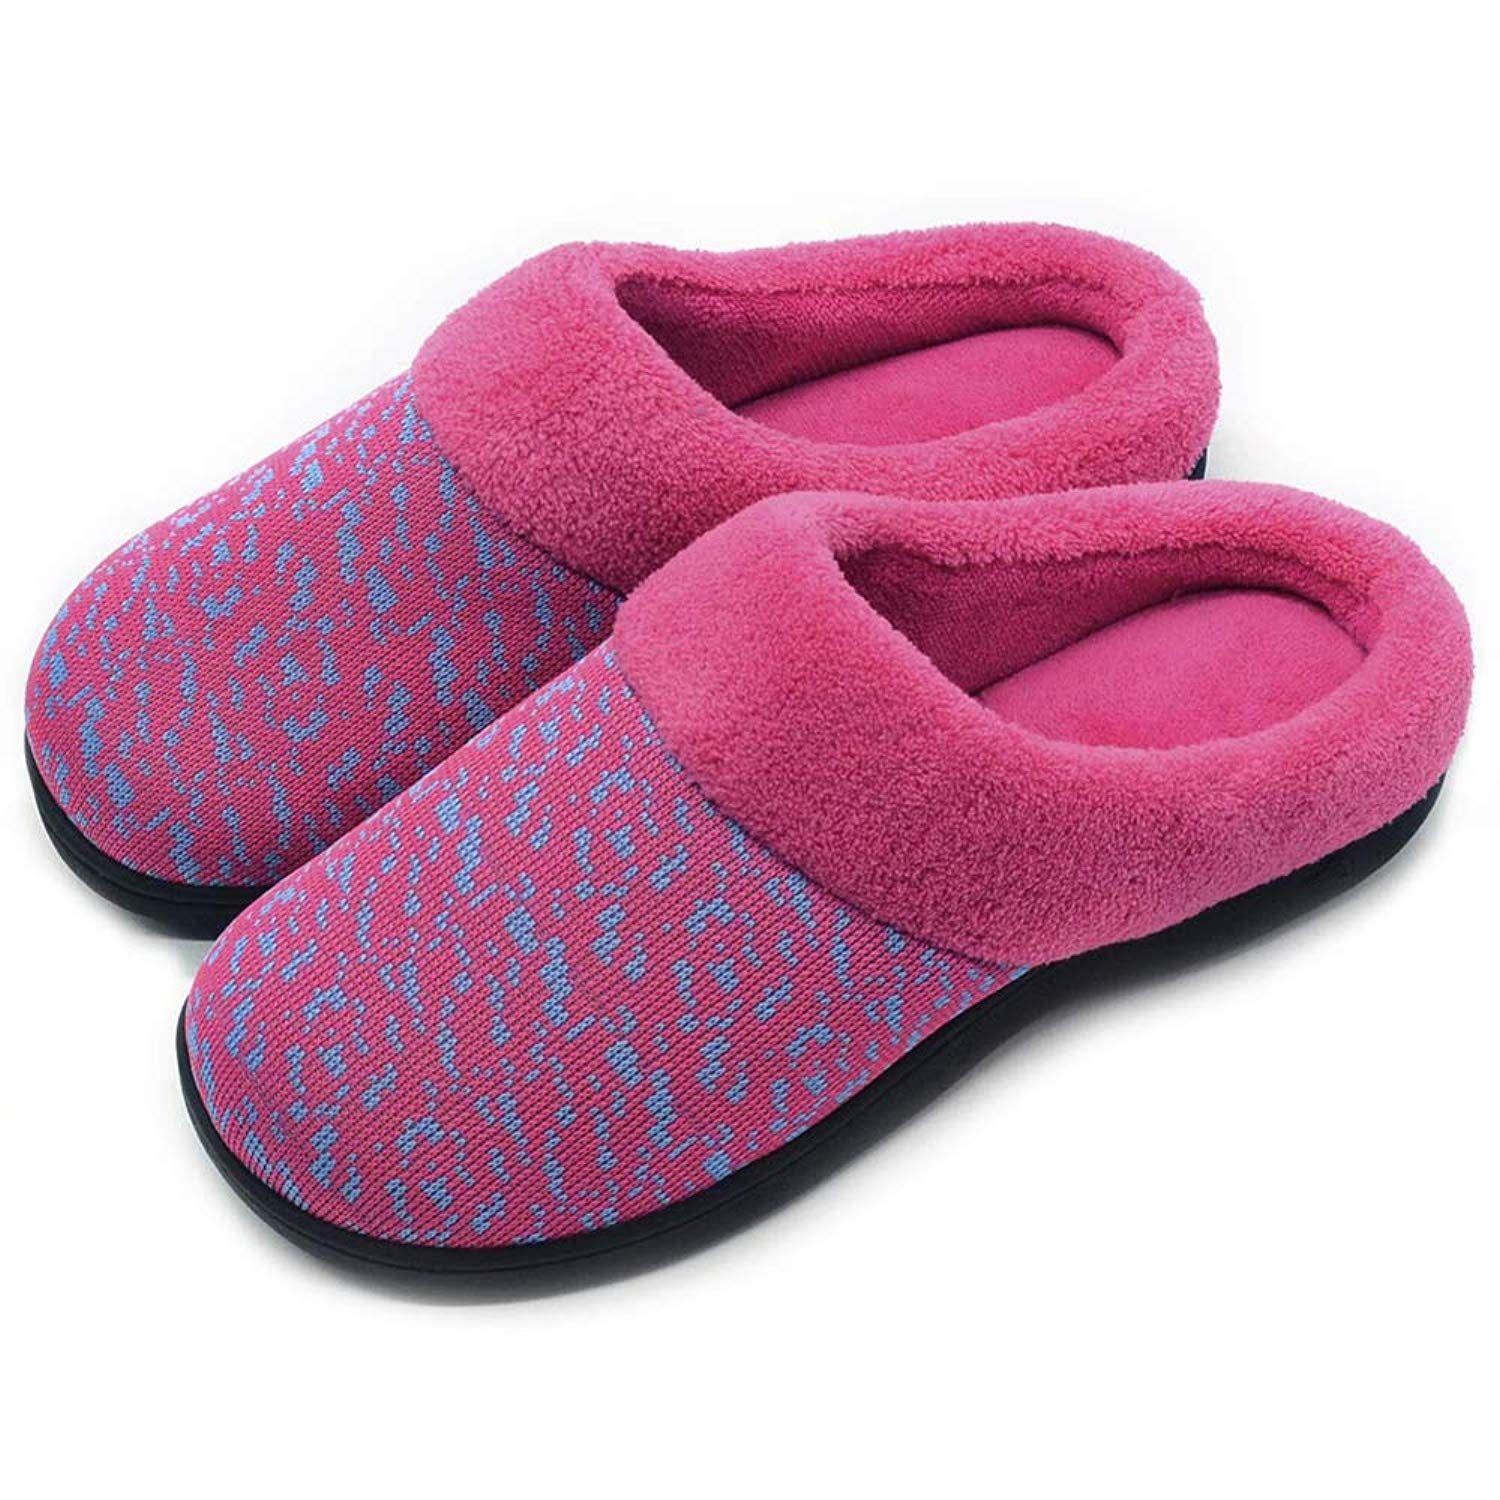 5b4fff7139c2 Get Quotations · Wishcotton Women s Slip On Knit Memory Foam Slippers  French Terry Lining Indoor Outdoor House Shoes